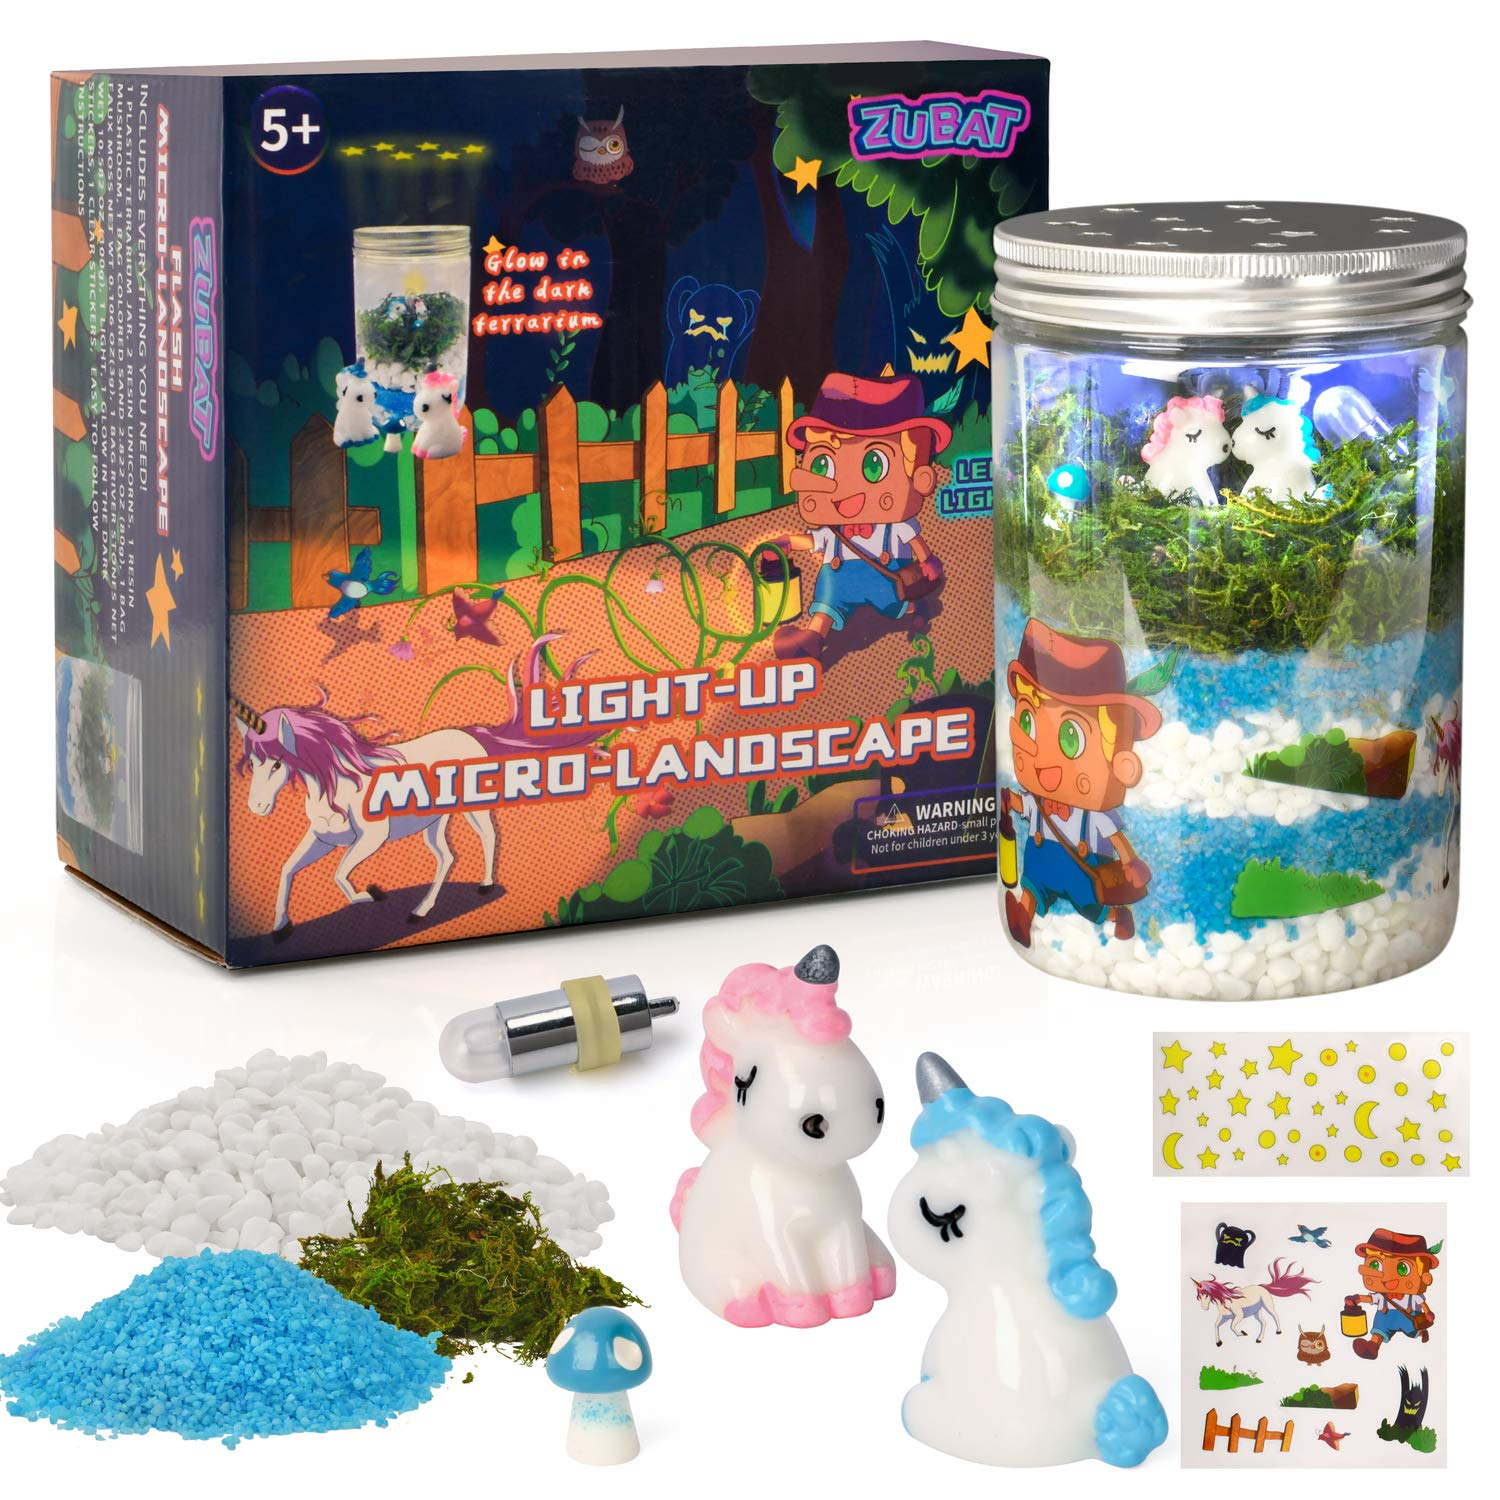 ZUBAT Unicorn Terrarium Kit with Light Up, DIY Unicorn Micro Landscape with Flash Craft Set in Jar, Educational Garden Discovery Art for Age 5+ Kids